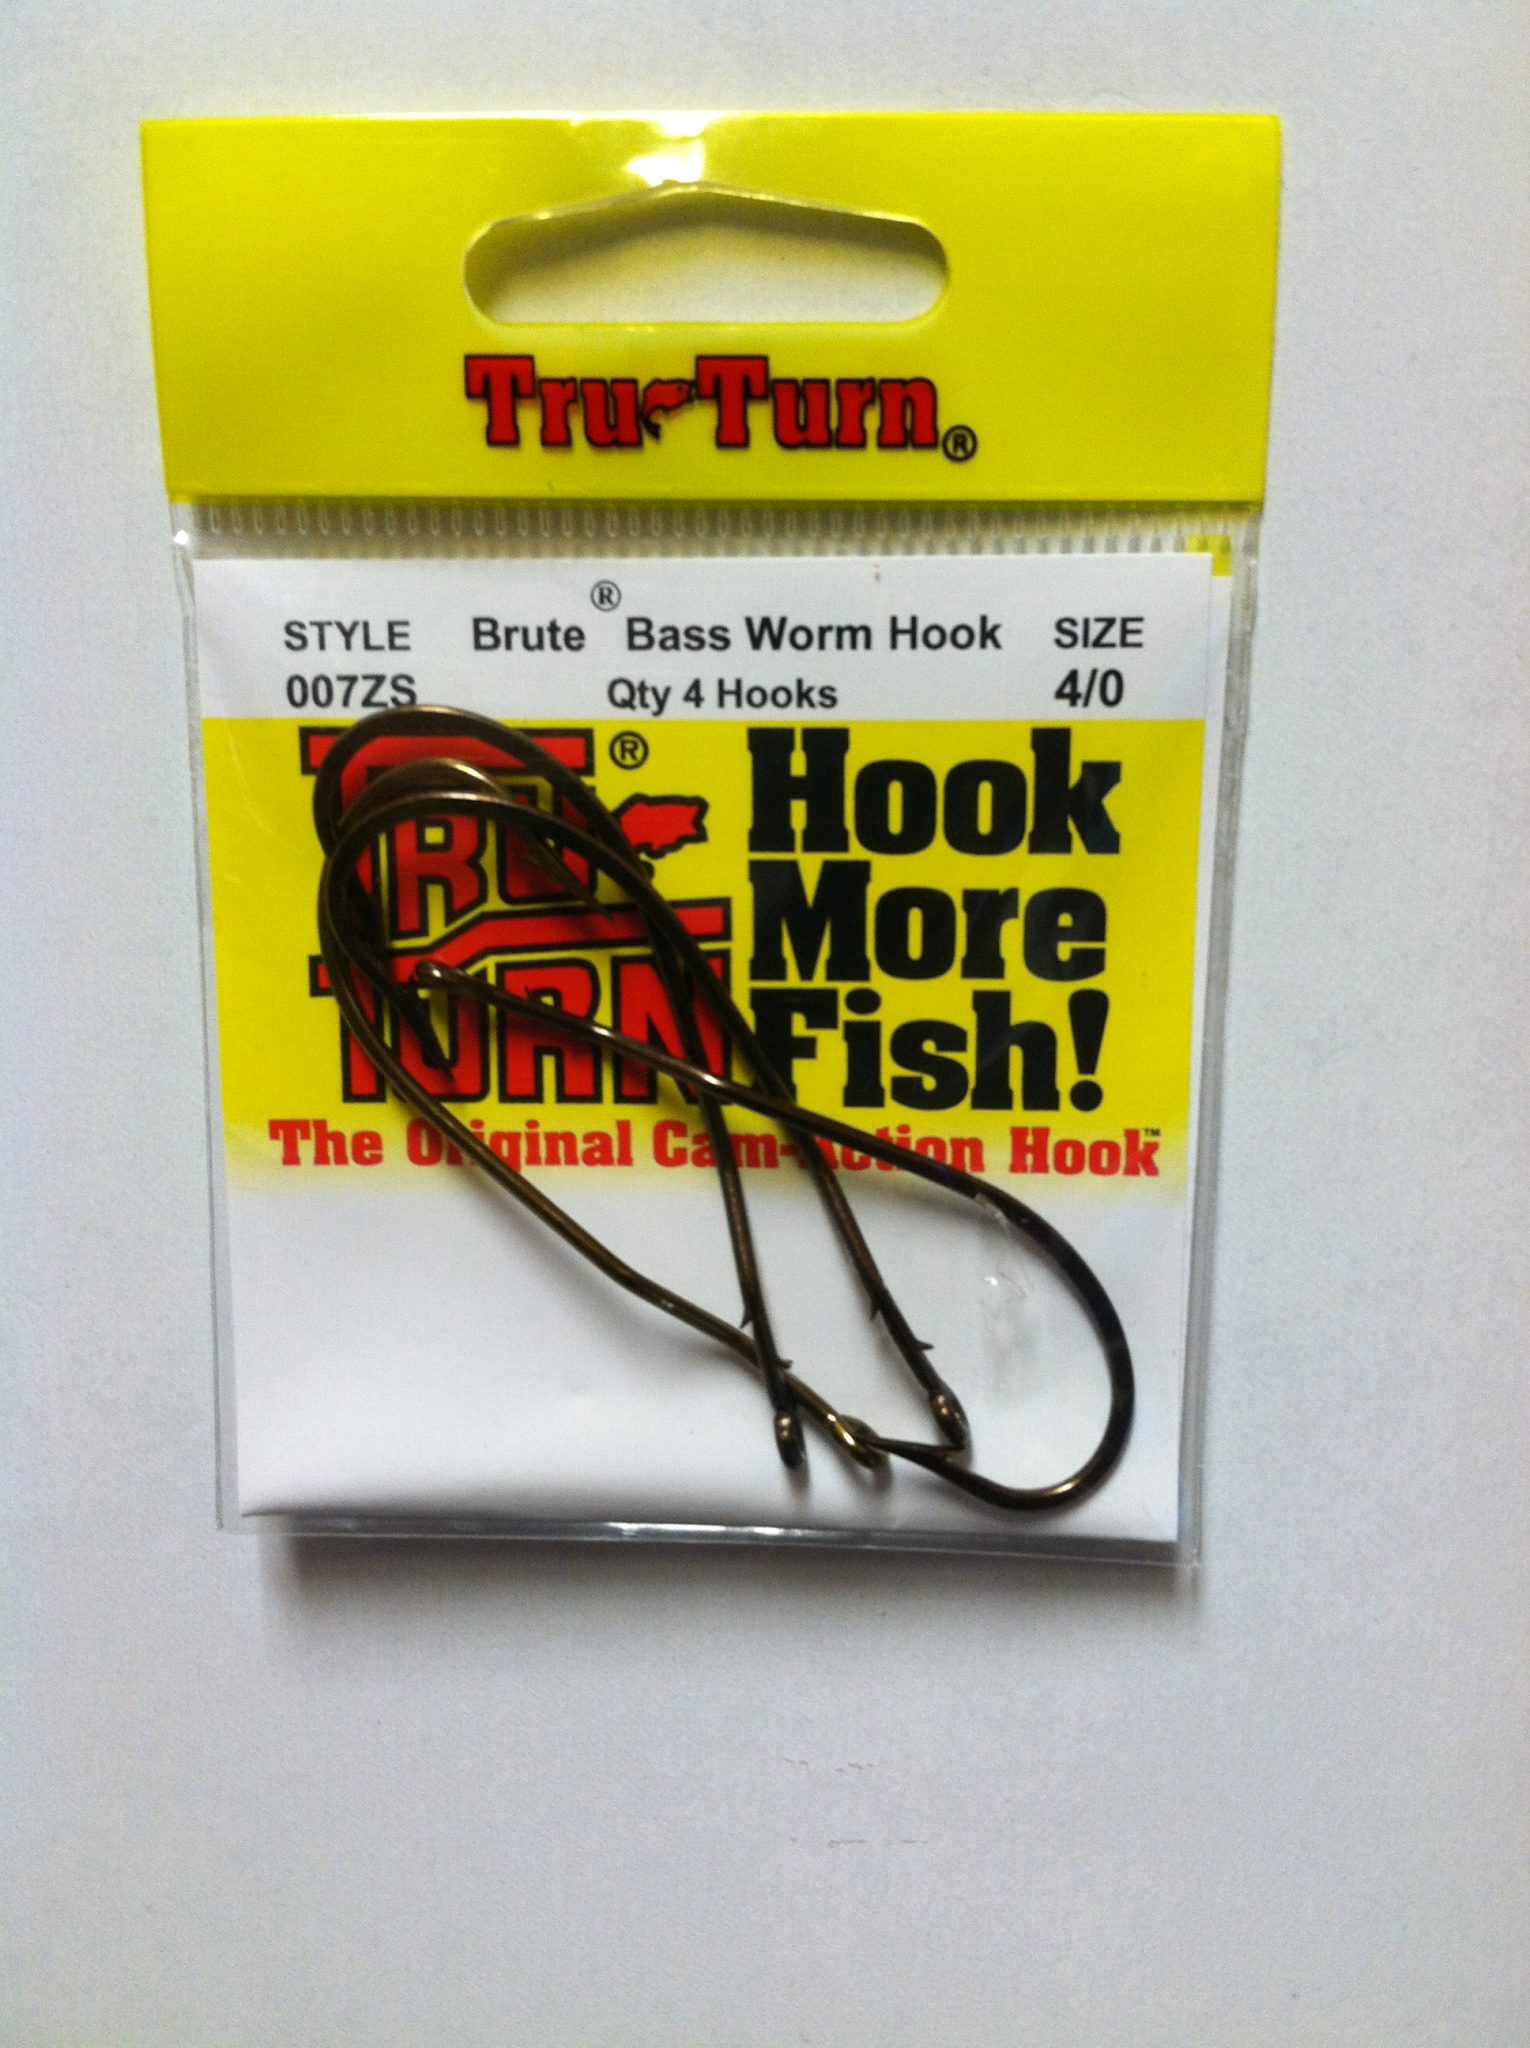 tru turn brute bass worm hook 4 pk.